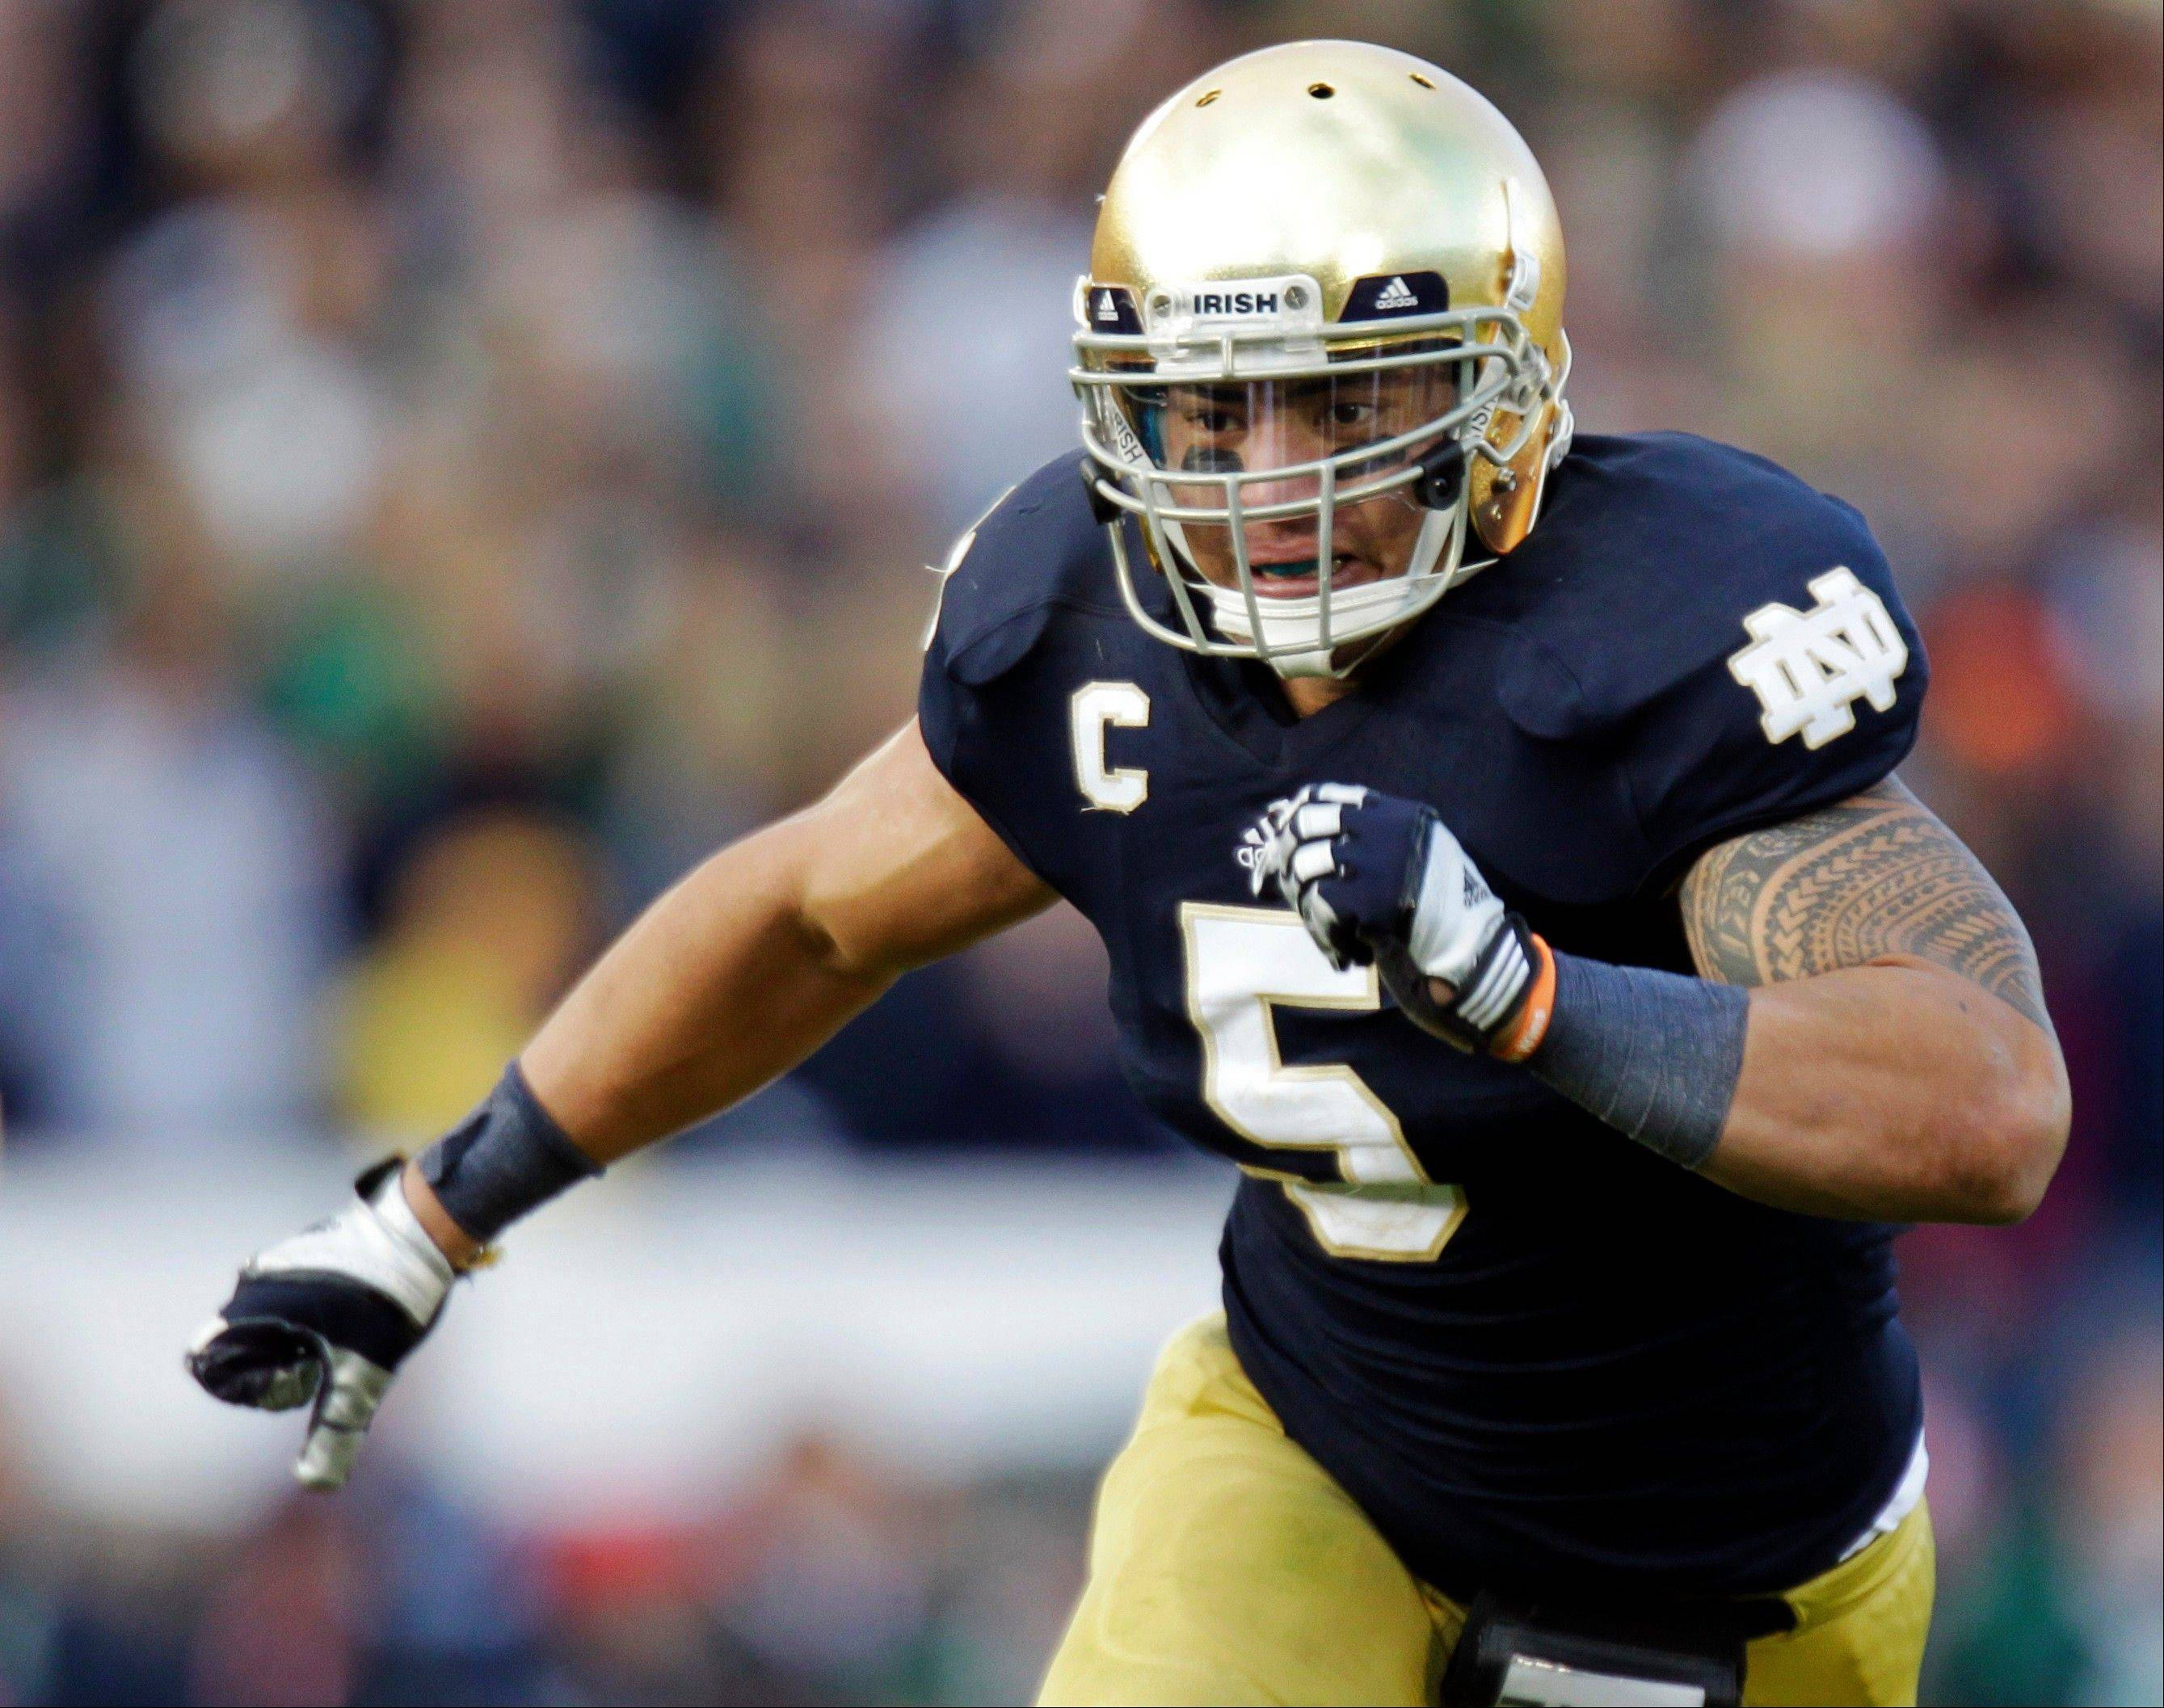 Notre Dame linebacker Manti Te'o chases the action during the second half against BYU in South Bend.